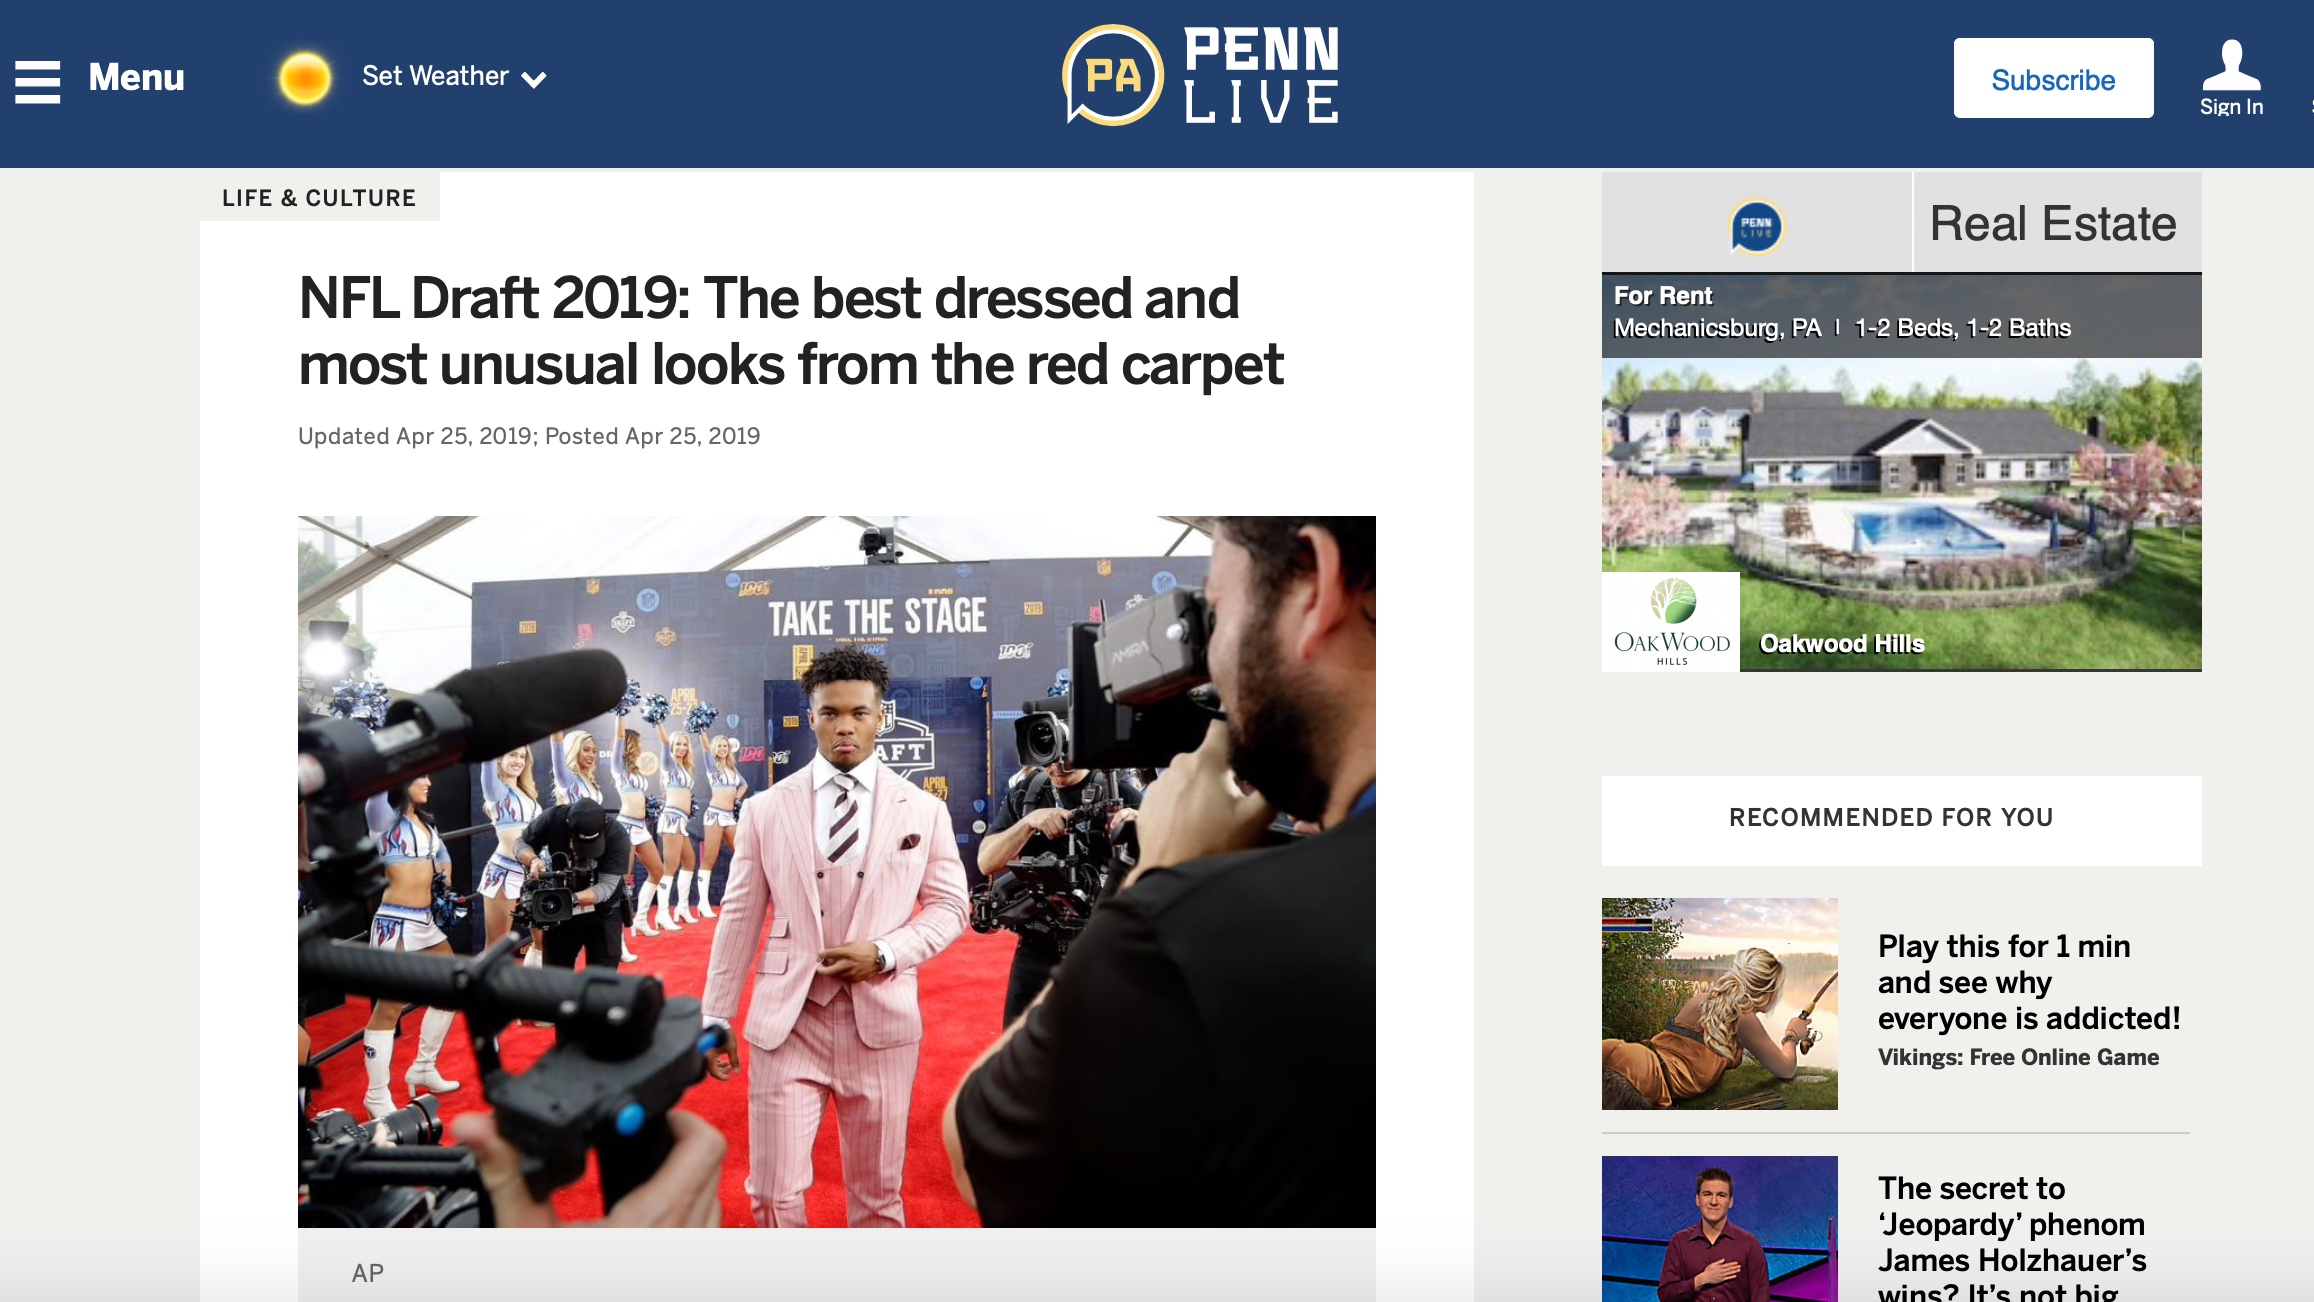 Penn Live , April 25, 2019   NFL Draft 2019: The best dressed and most unusual looks from the red carpet